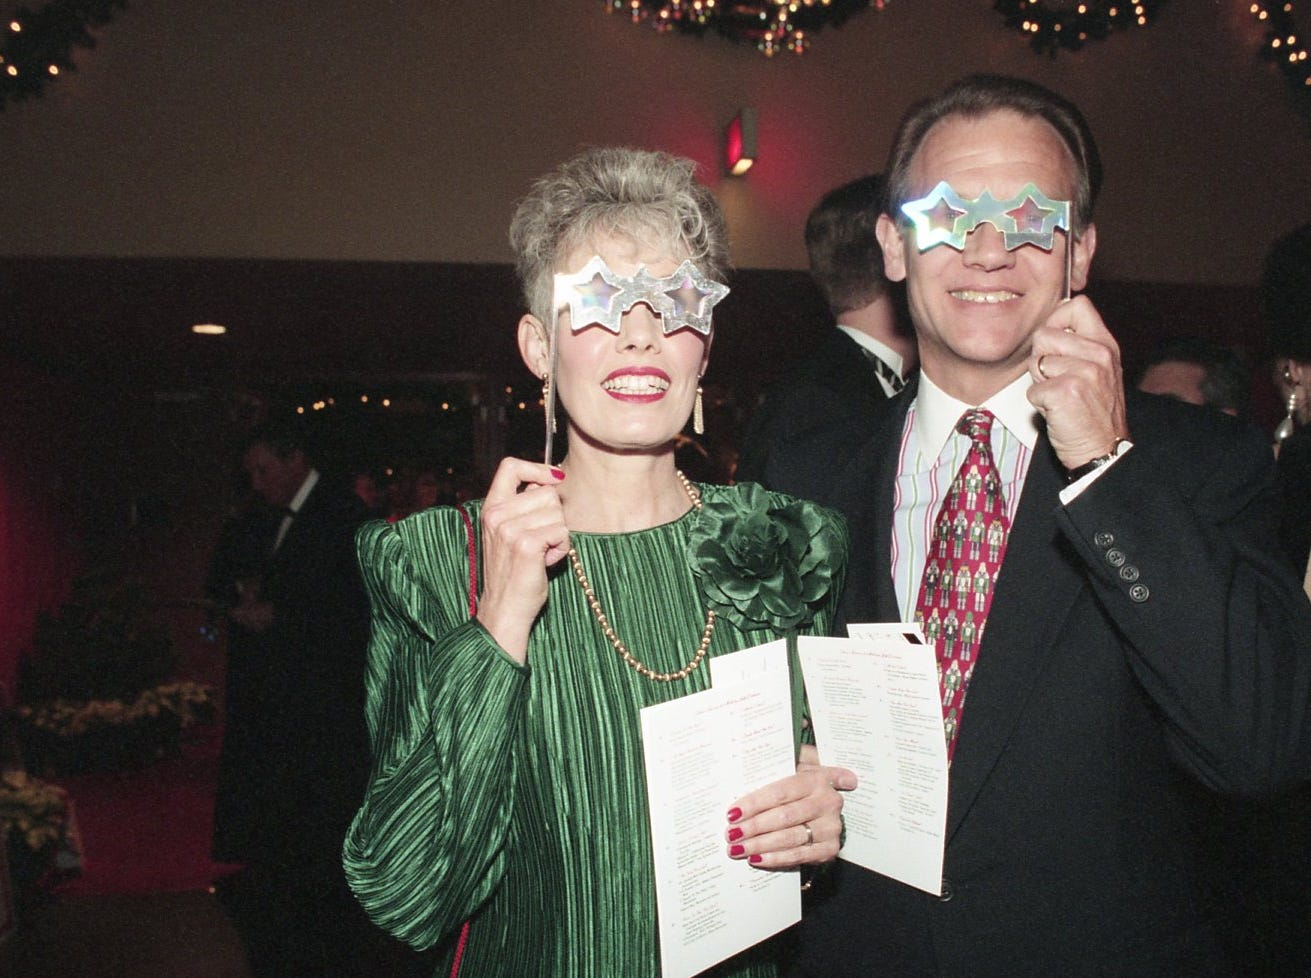 Jan and Jim Hart walked into Fantasy of Trees opening night with stars on their eyes. The glasses were used to look at the lights on the trees to add a special effect.